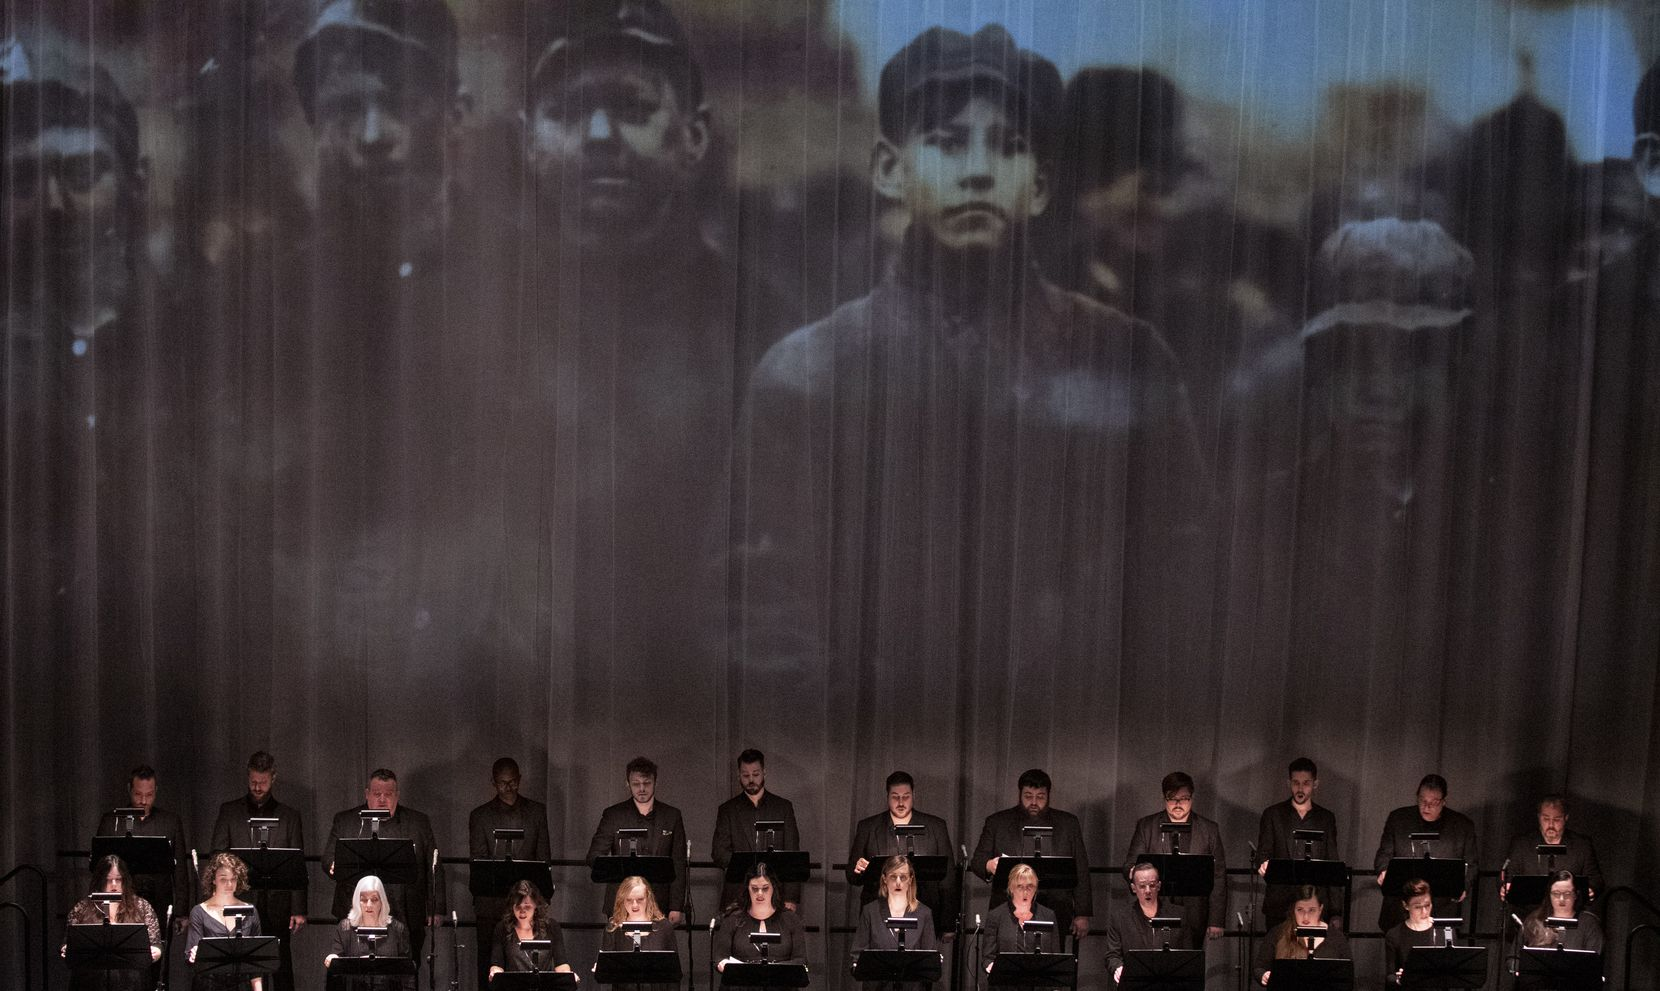 "A photo of young coal miners was projected during the Verdigris Ensemble's performance of Julia Wolfe's ""Anthracite Fields"" at Moody Performance Hall as part of the Dallas Symphony Orchestra's Soluna International Music and Arts Festival on April 15, 2019. With the economy spiraling, the group has concerns about its future."